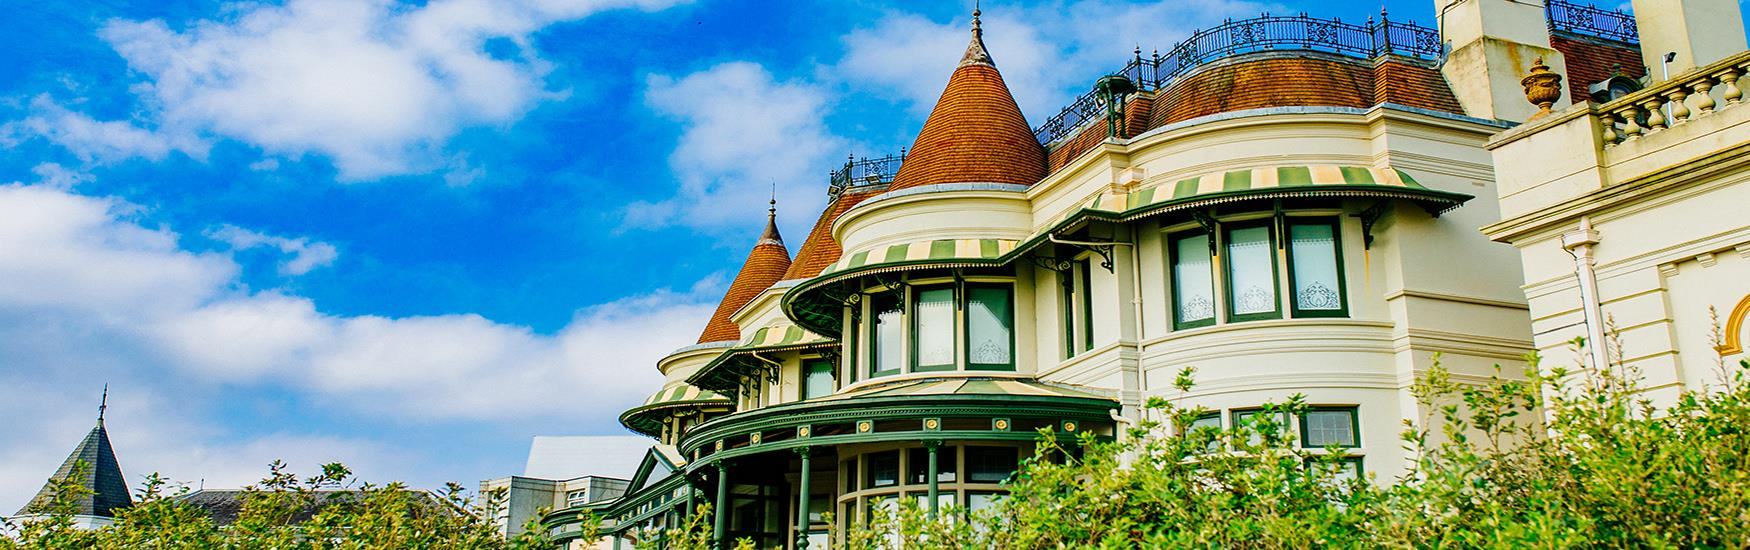 Explore the Victorian Russell-Cotes Art Gallery & Museum